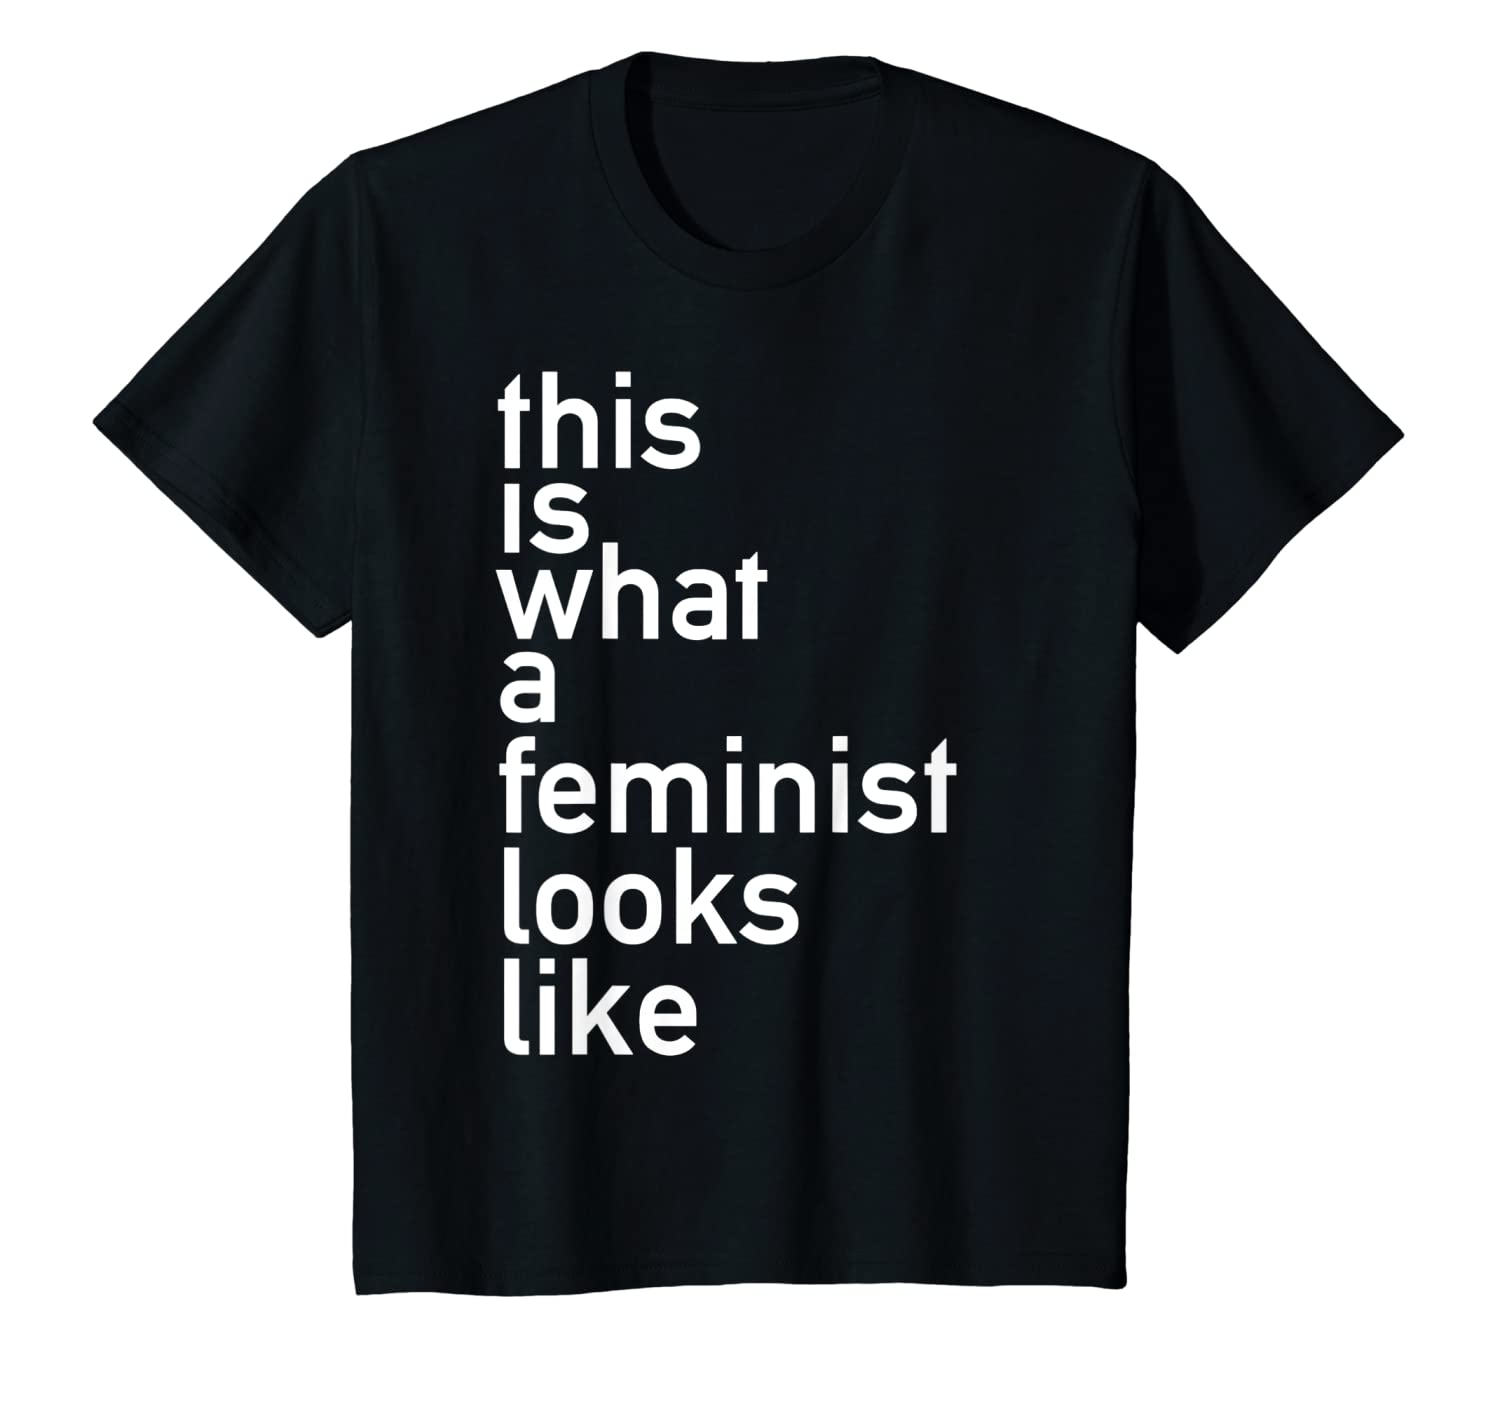 3489c2a1 Amazon.com: This is What a Feminist Looks Like Helvetica T-Shirt: Clothing